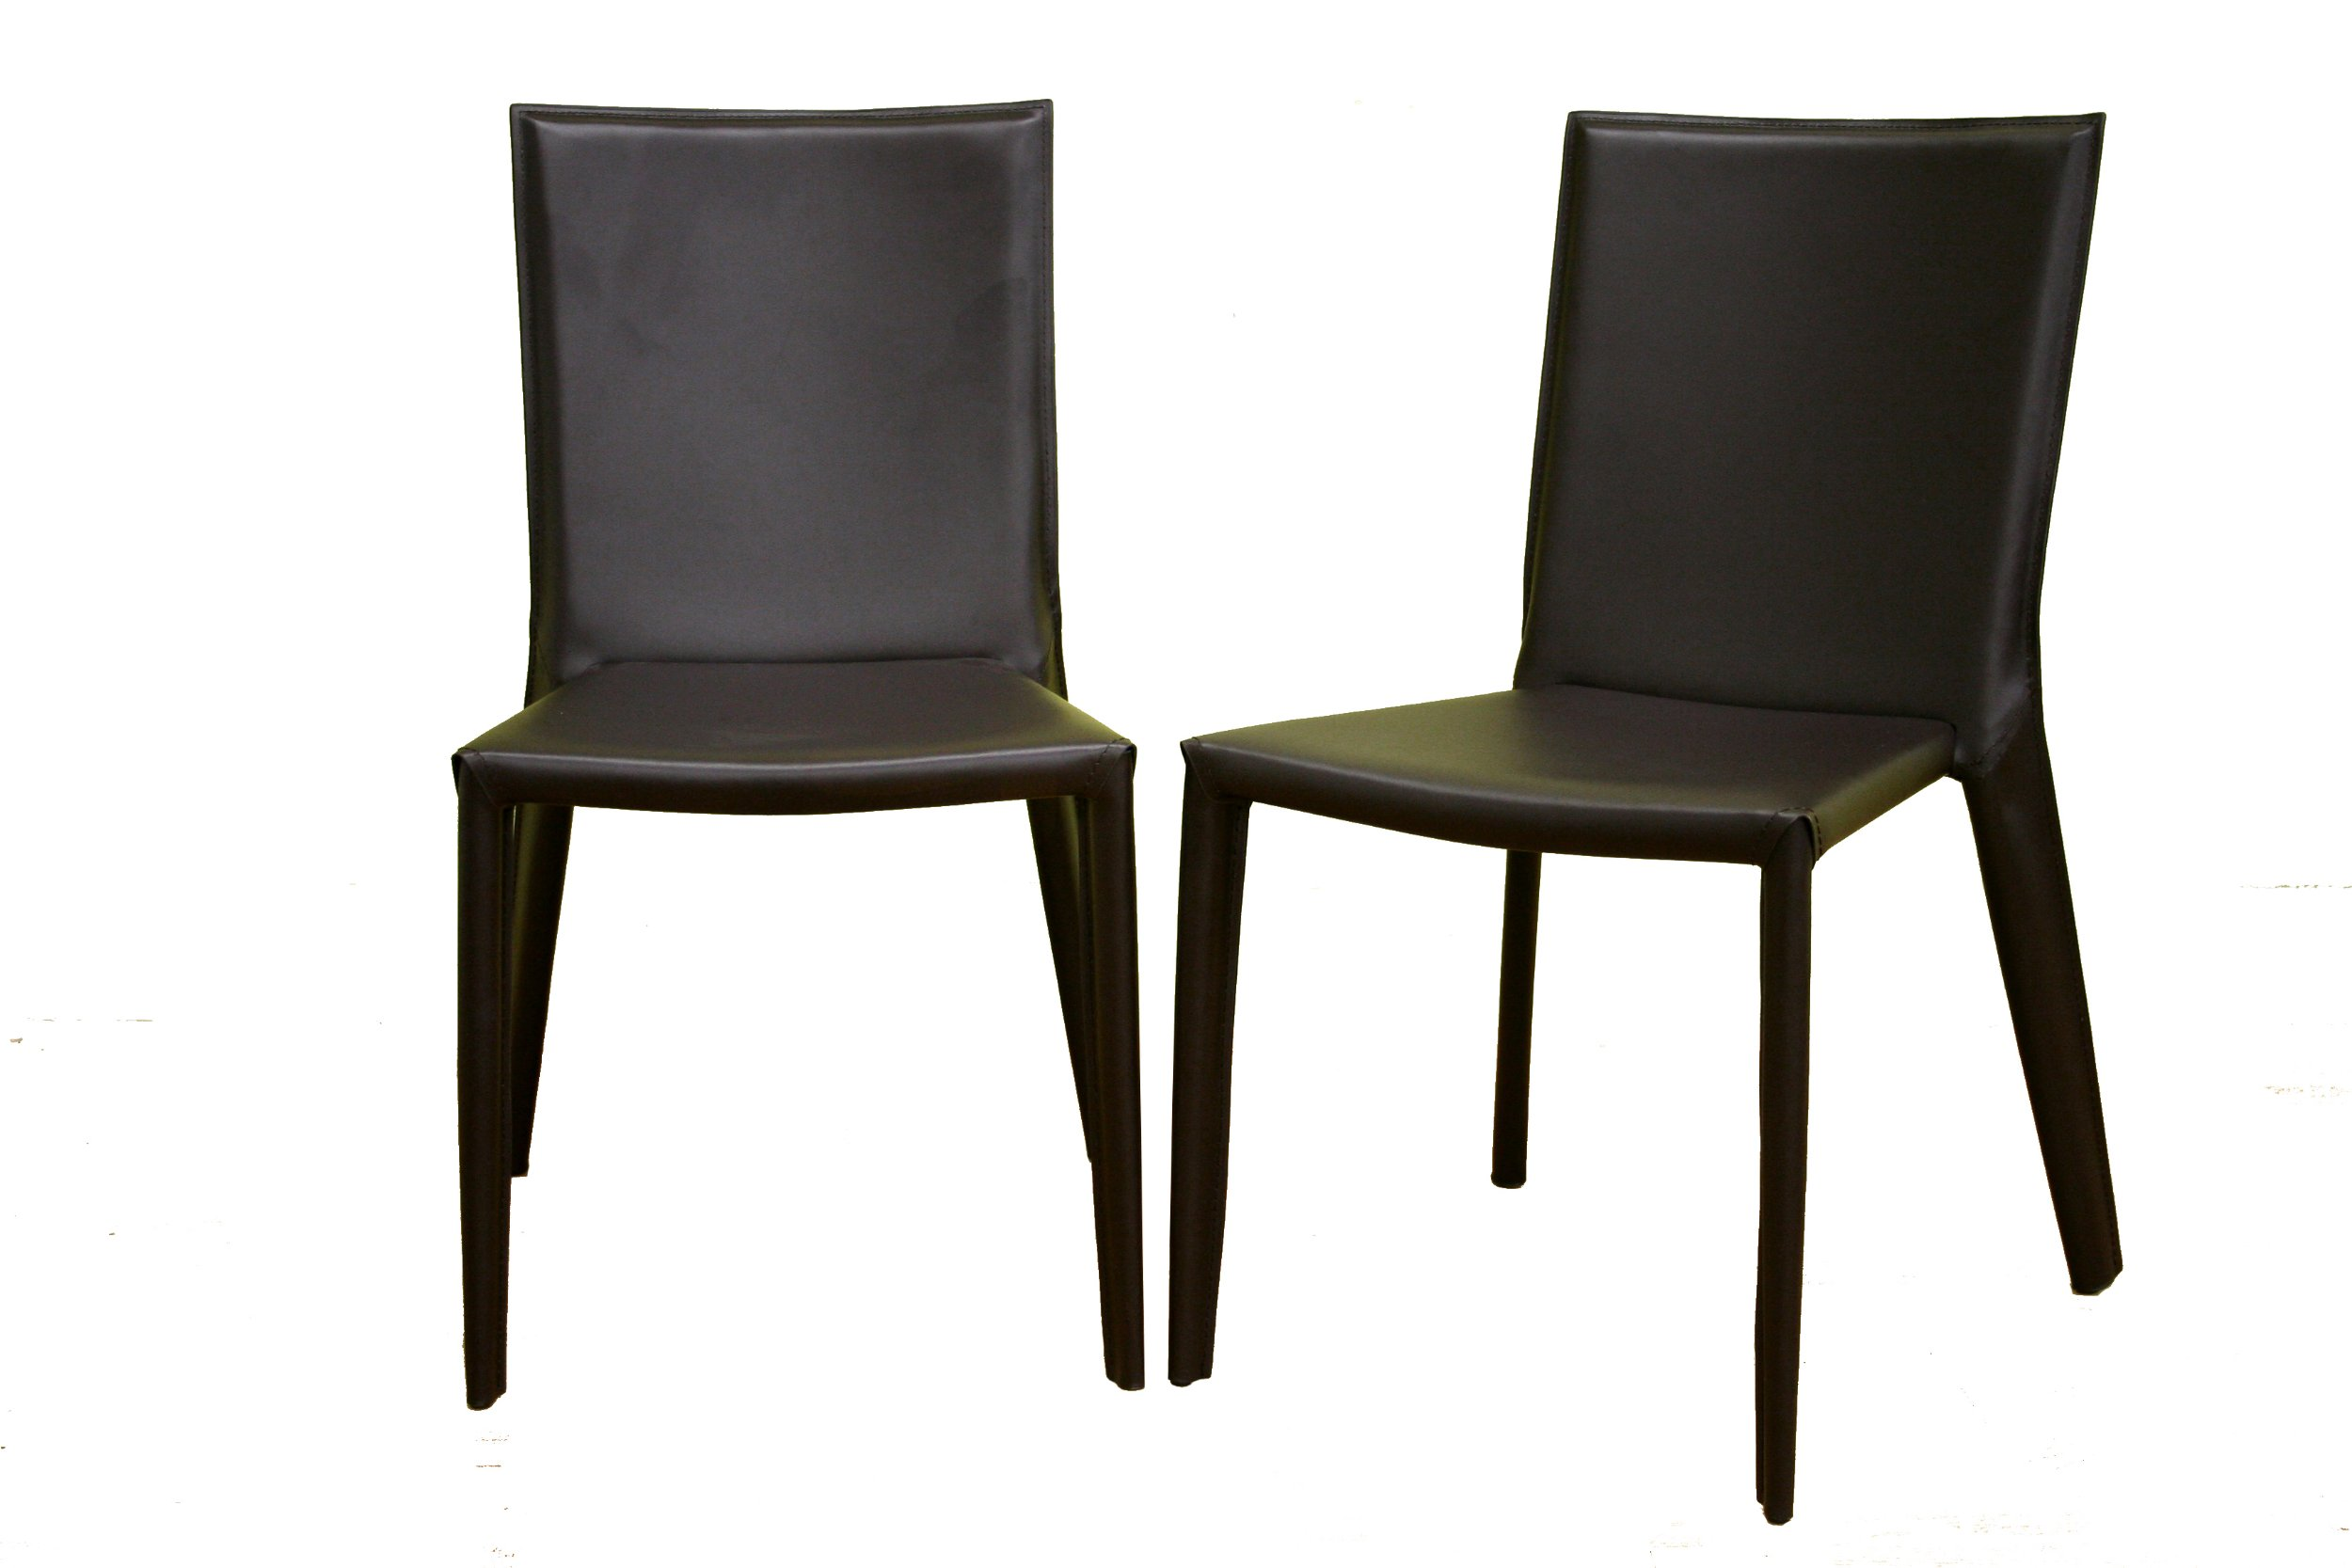 Baxton Furniture Studios Russo Bonded Leather Dining Chair, Chocolate Brown, Set of 2 - Set of 2 contemporary dining chairs with streamlined, modern design Seat, legs, and seatback covered in chocolate brown bonded leather Steel legs and frame for stability; low-profile black plastic floor protectors - kitchen-dining-room-furniture, kitchen-dining-room, kitchen-dining-room-chairs - 71BrIMsIjkL -